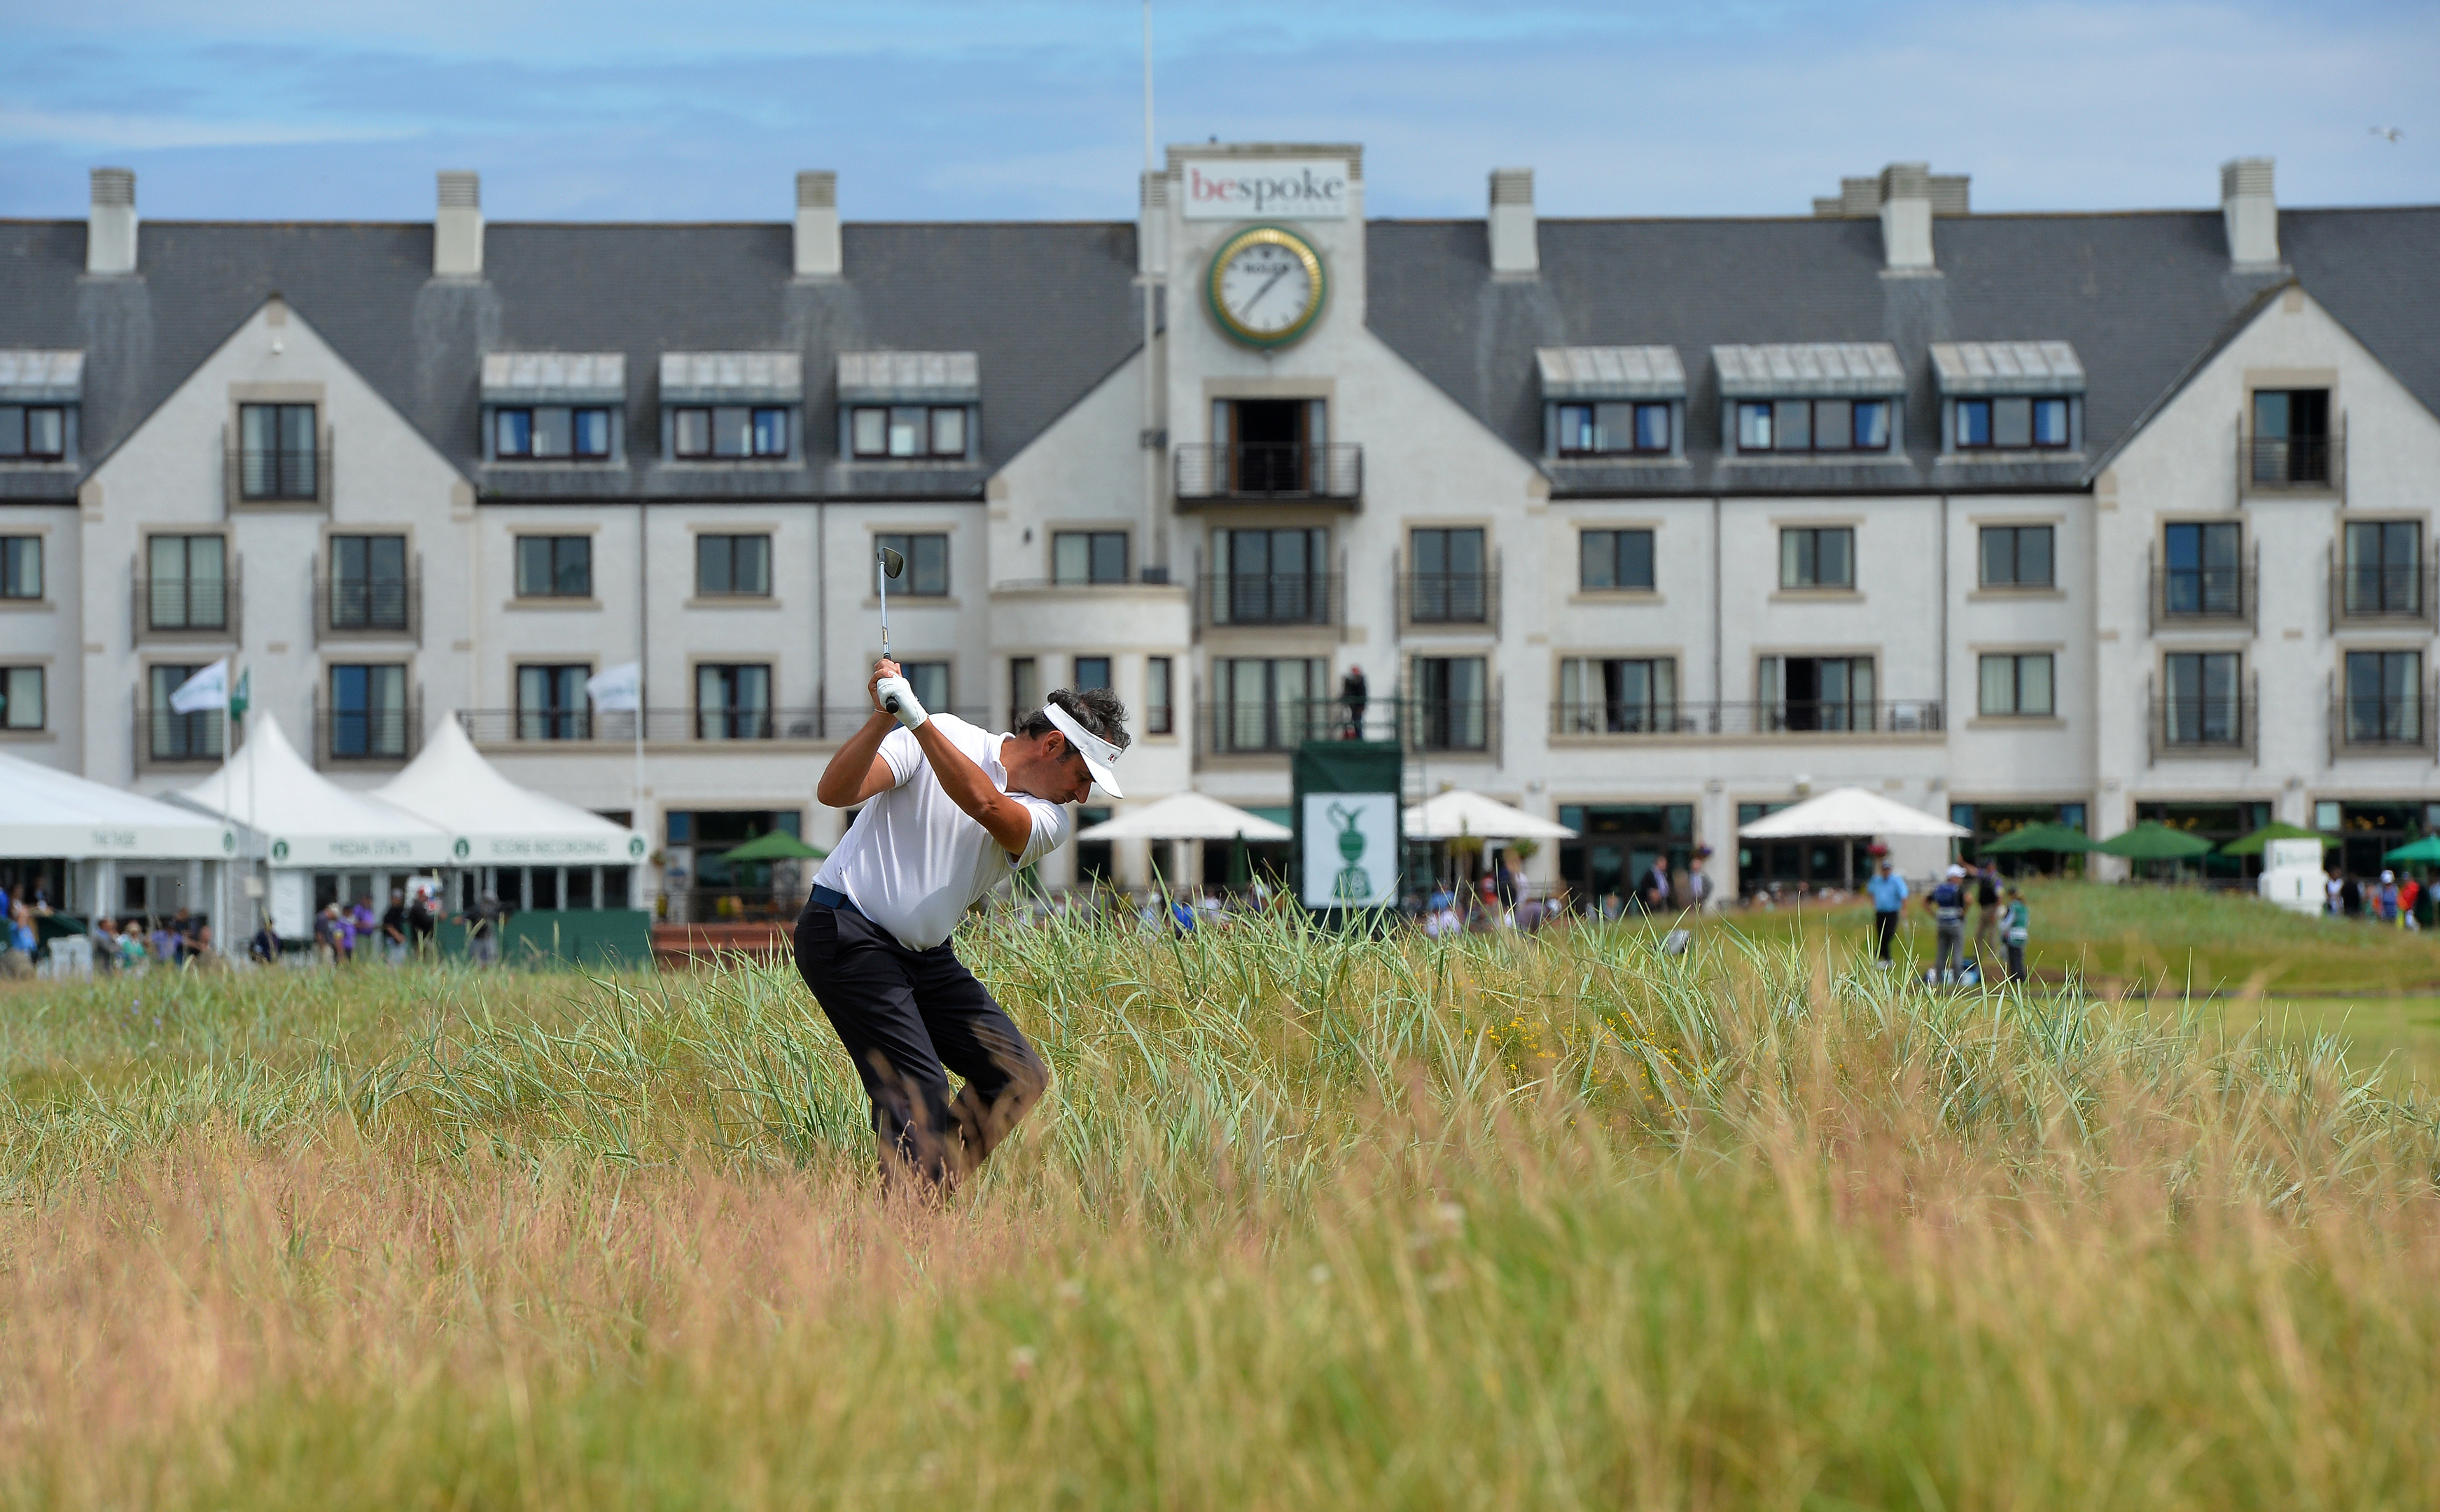 Jean Van De Velde hit from deep rough at the 18th during the The Senior Open at Carnoustie.